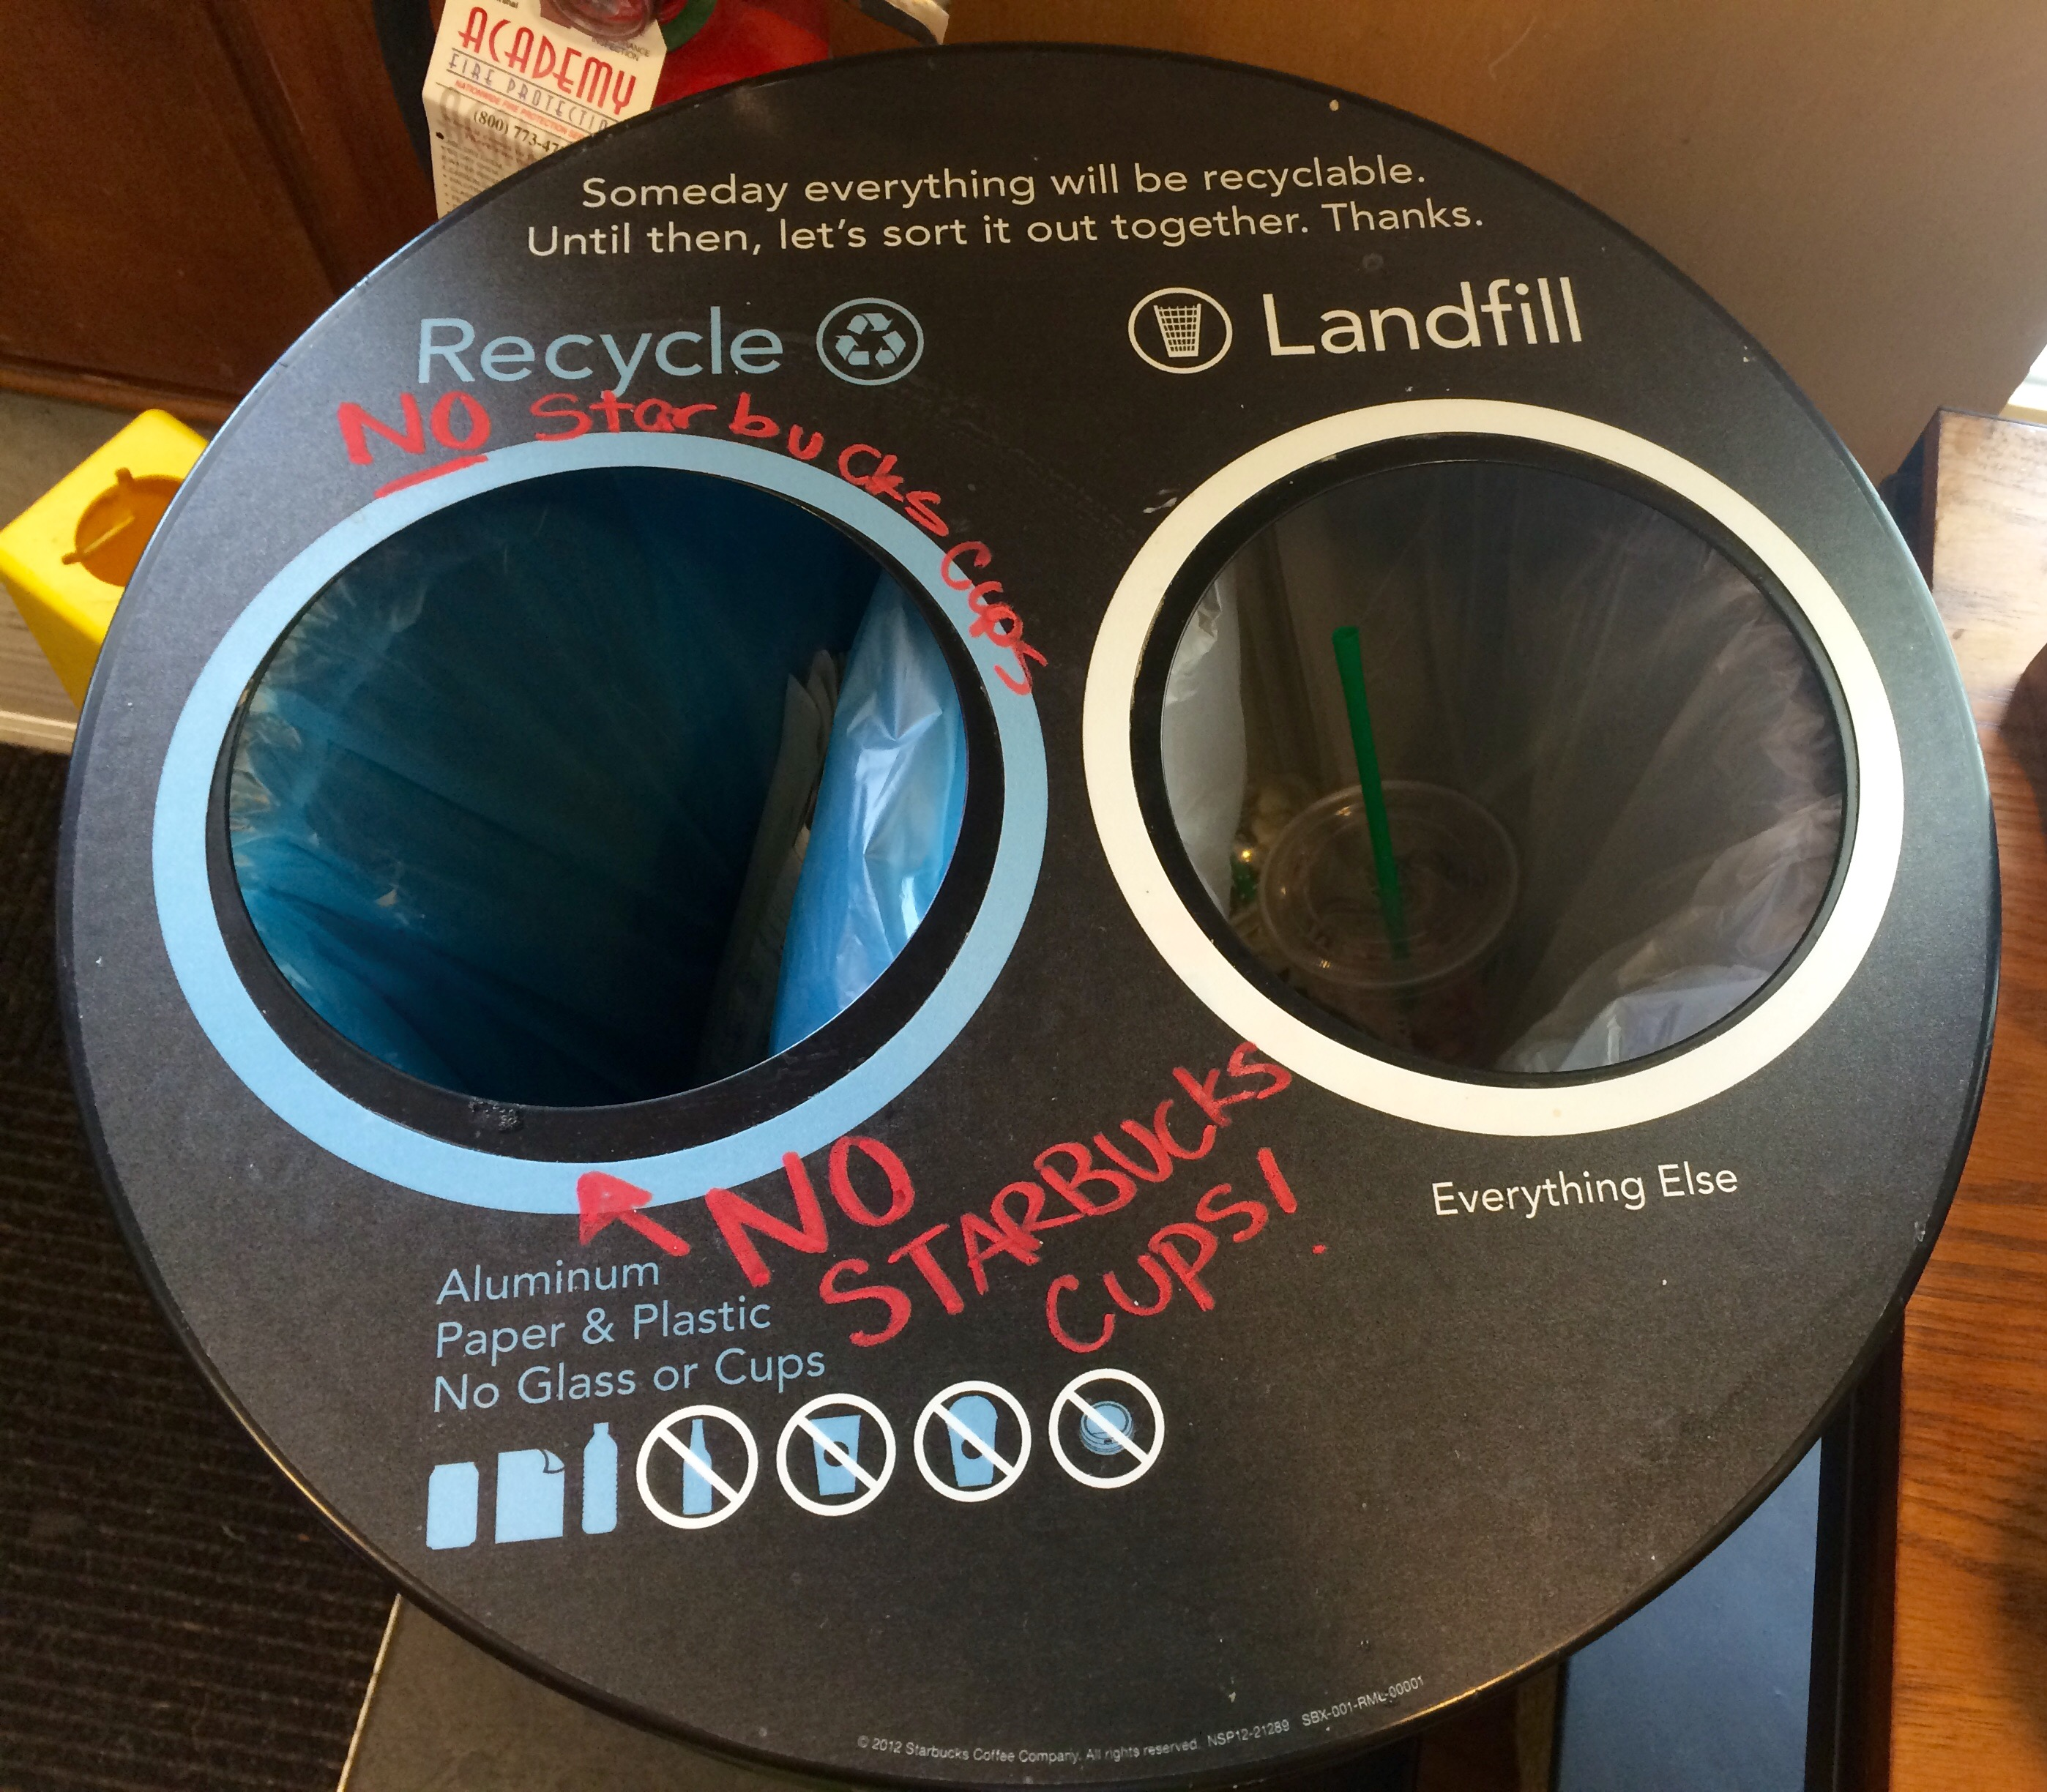 Starbucks Recycle Fail